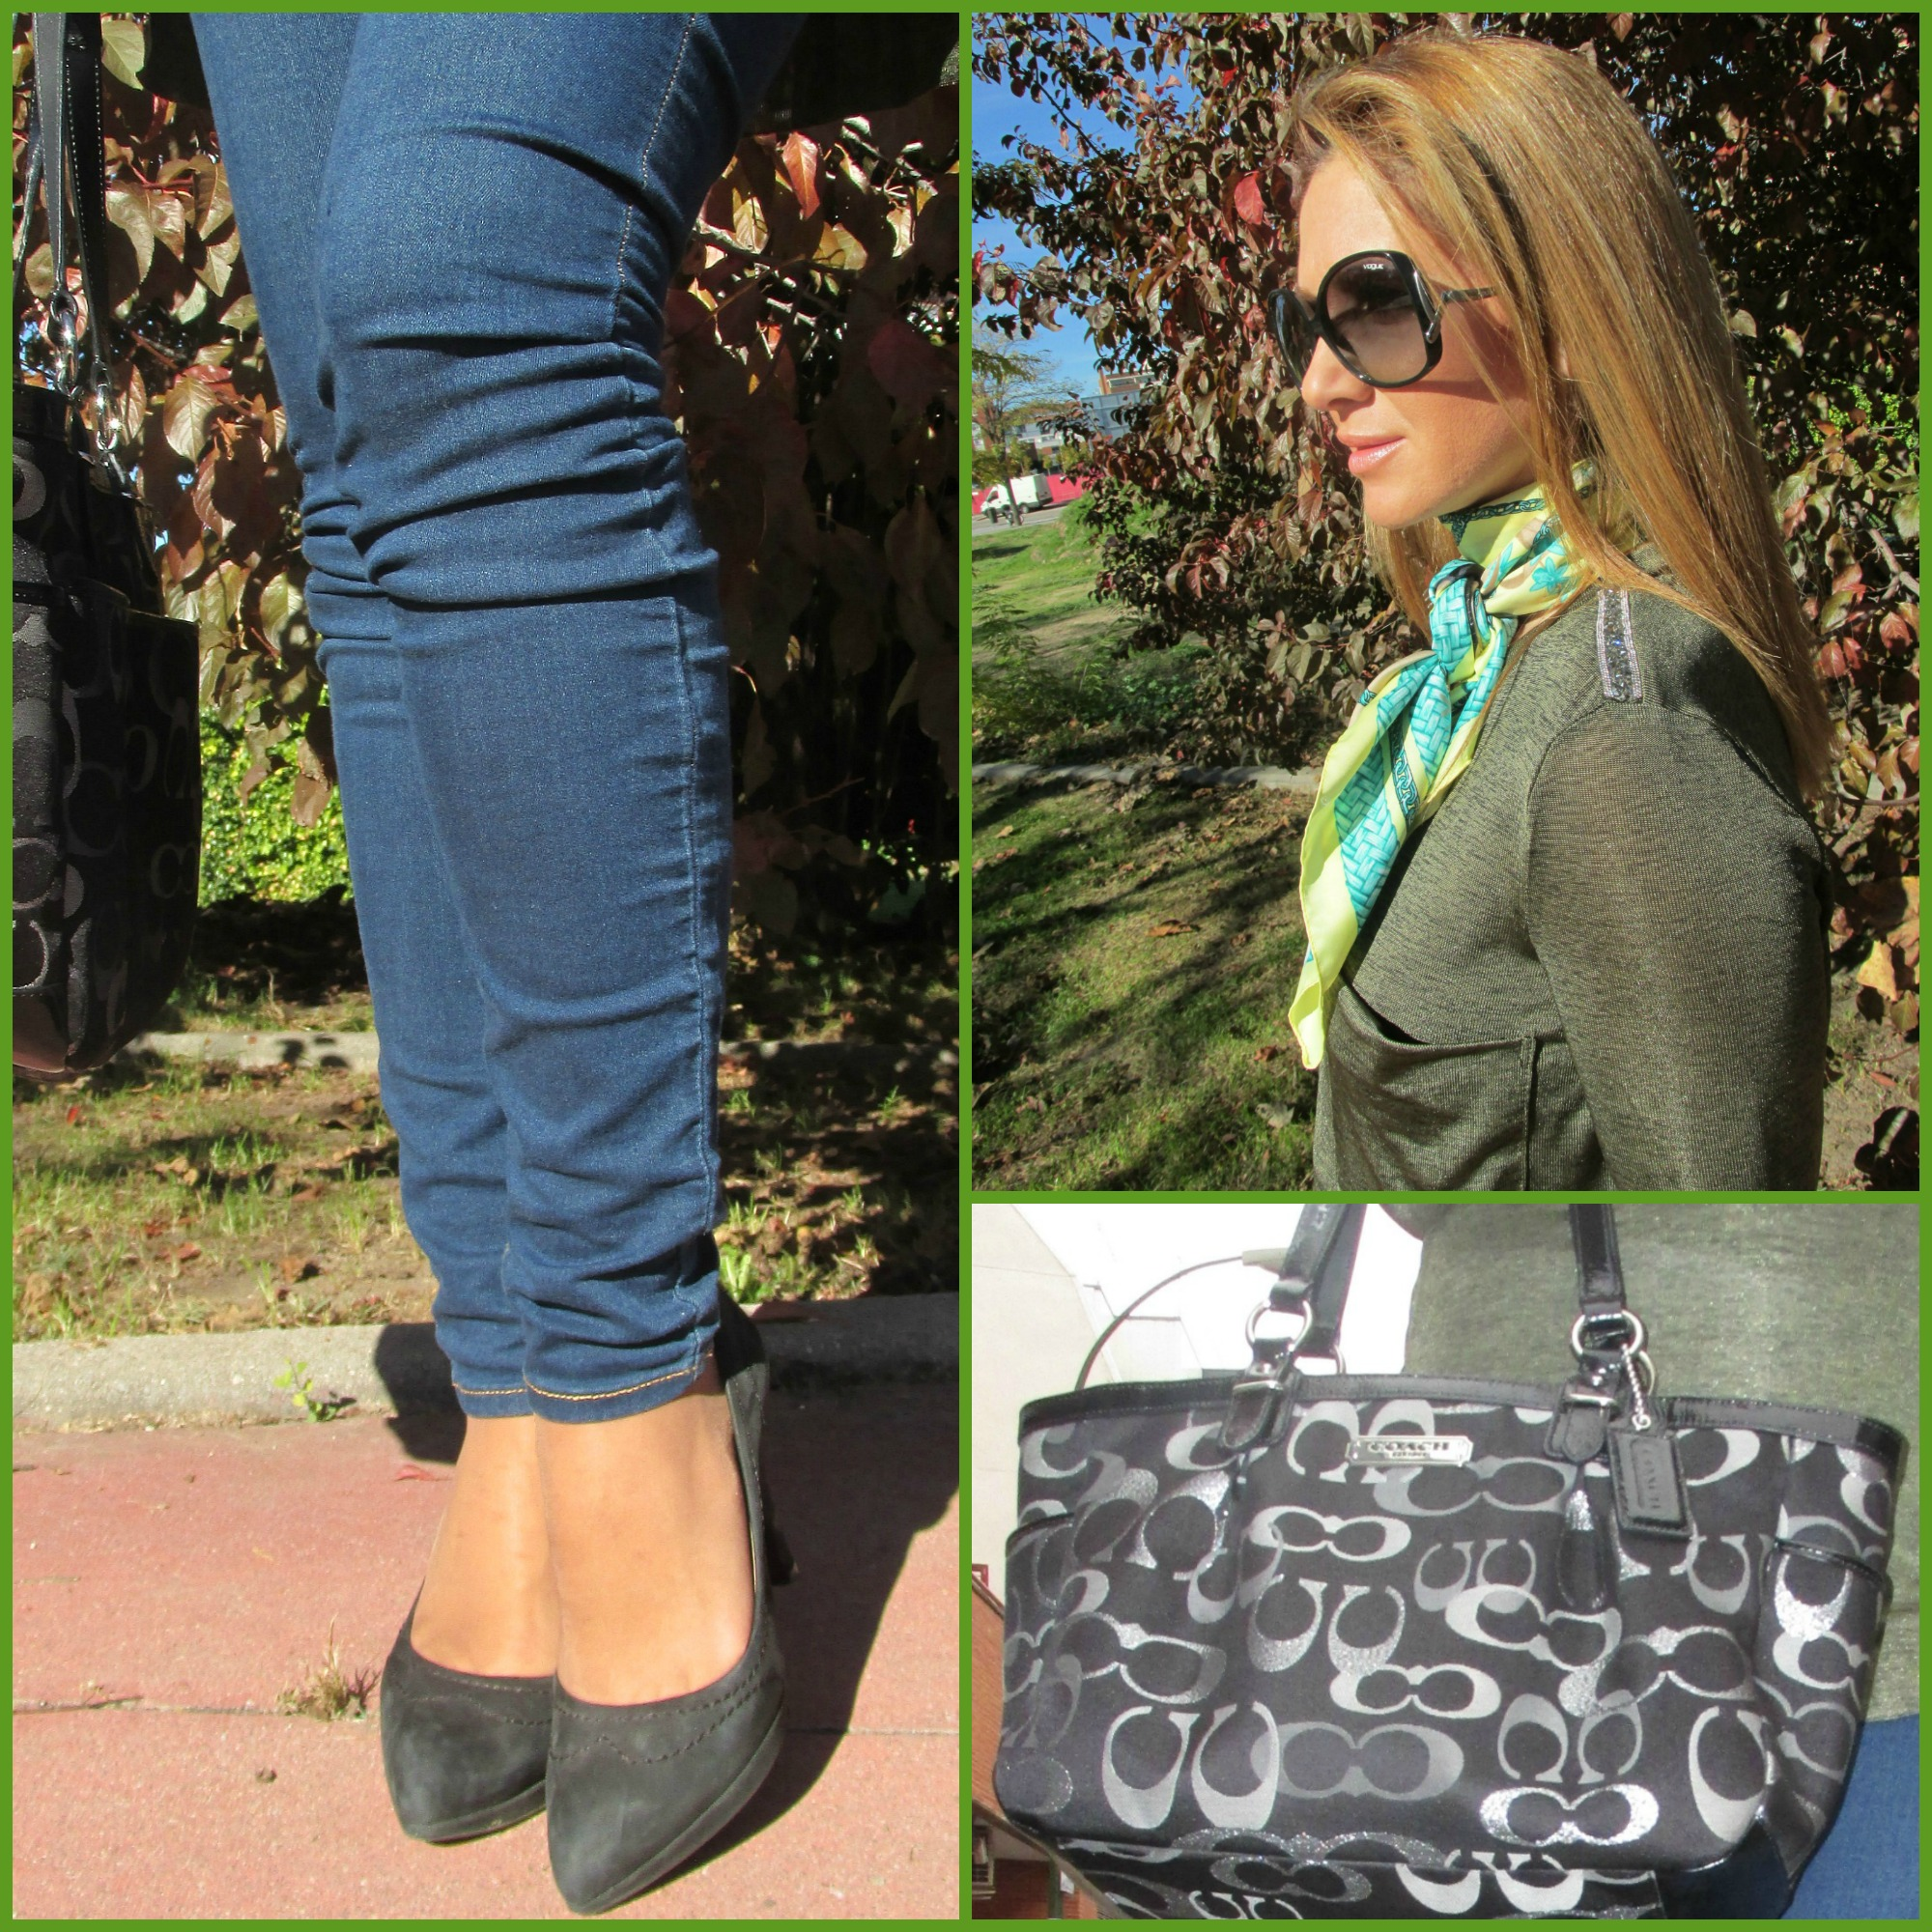 Jeans: MAMA SLIM FIT H&M (Fall/Winter ´16); Bag: COACH; Green top: STRADIVARIUS (Fall/Winter ´16); Scarf: H&M; Sunglasses: VOGUE; Shoes: MARIAN